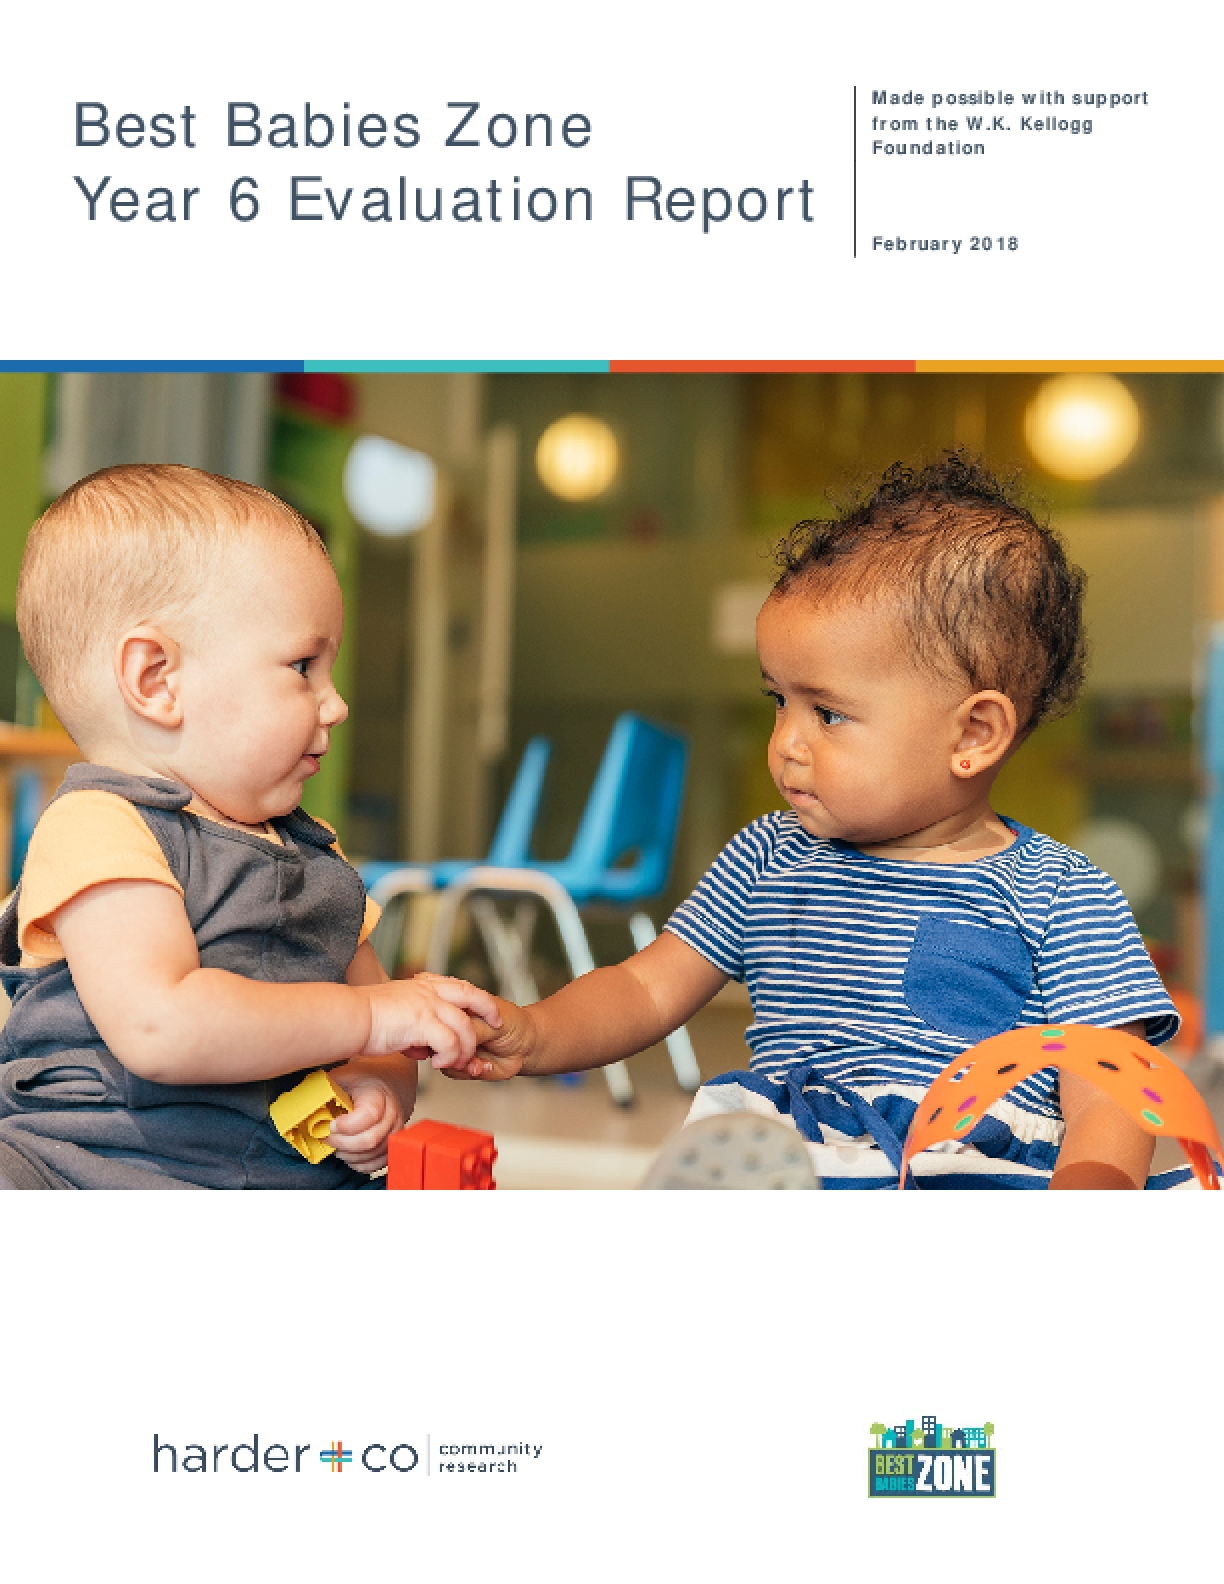 Best Babies Zone: Year 6 Evaluation Report